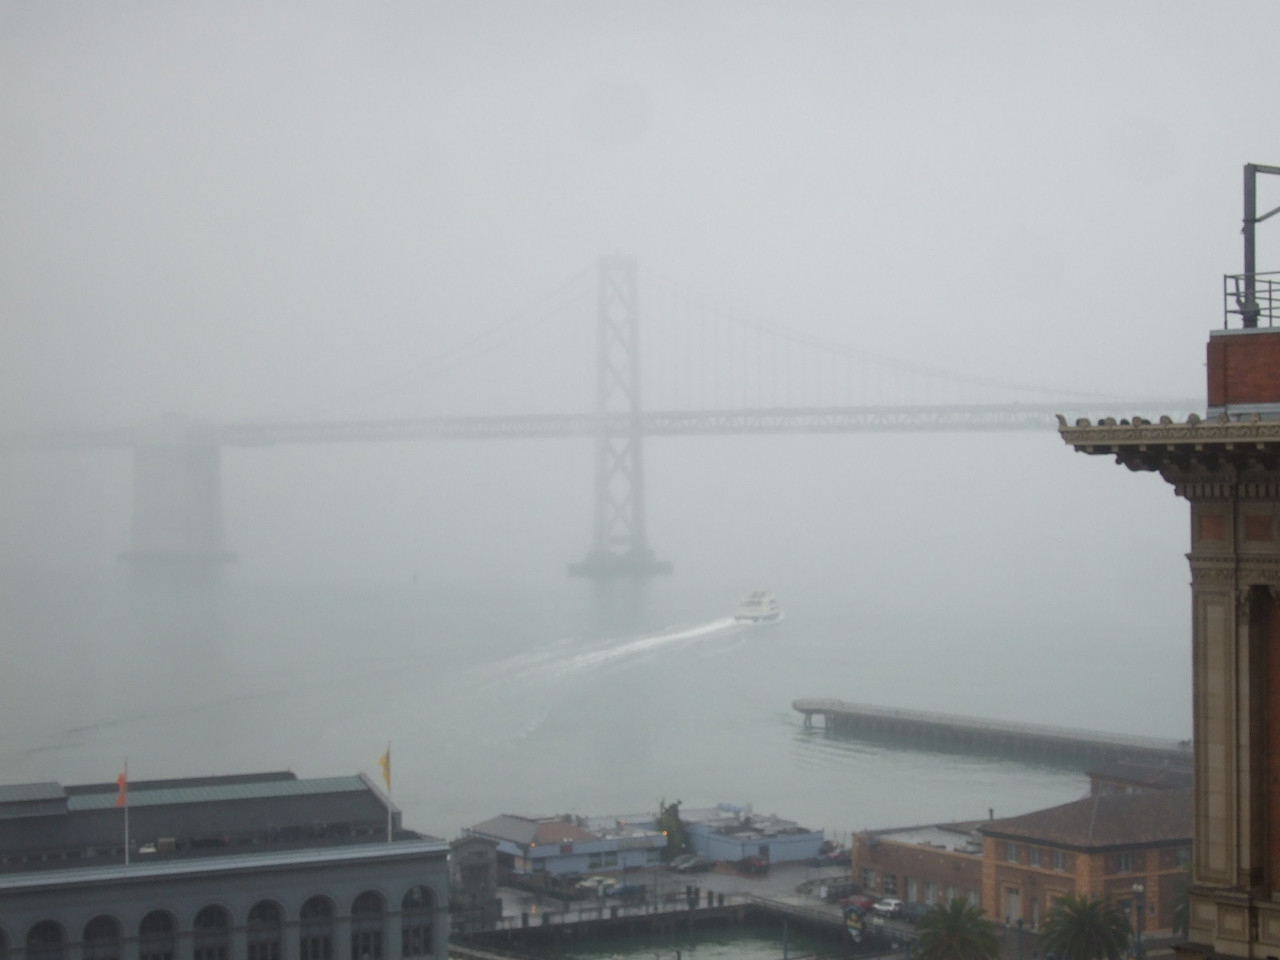 Another view of the fog from our room.